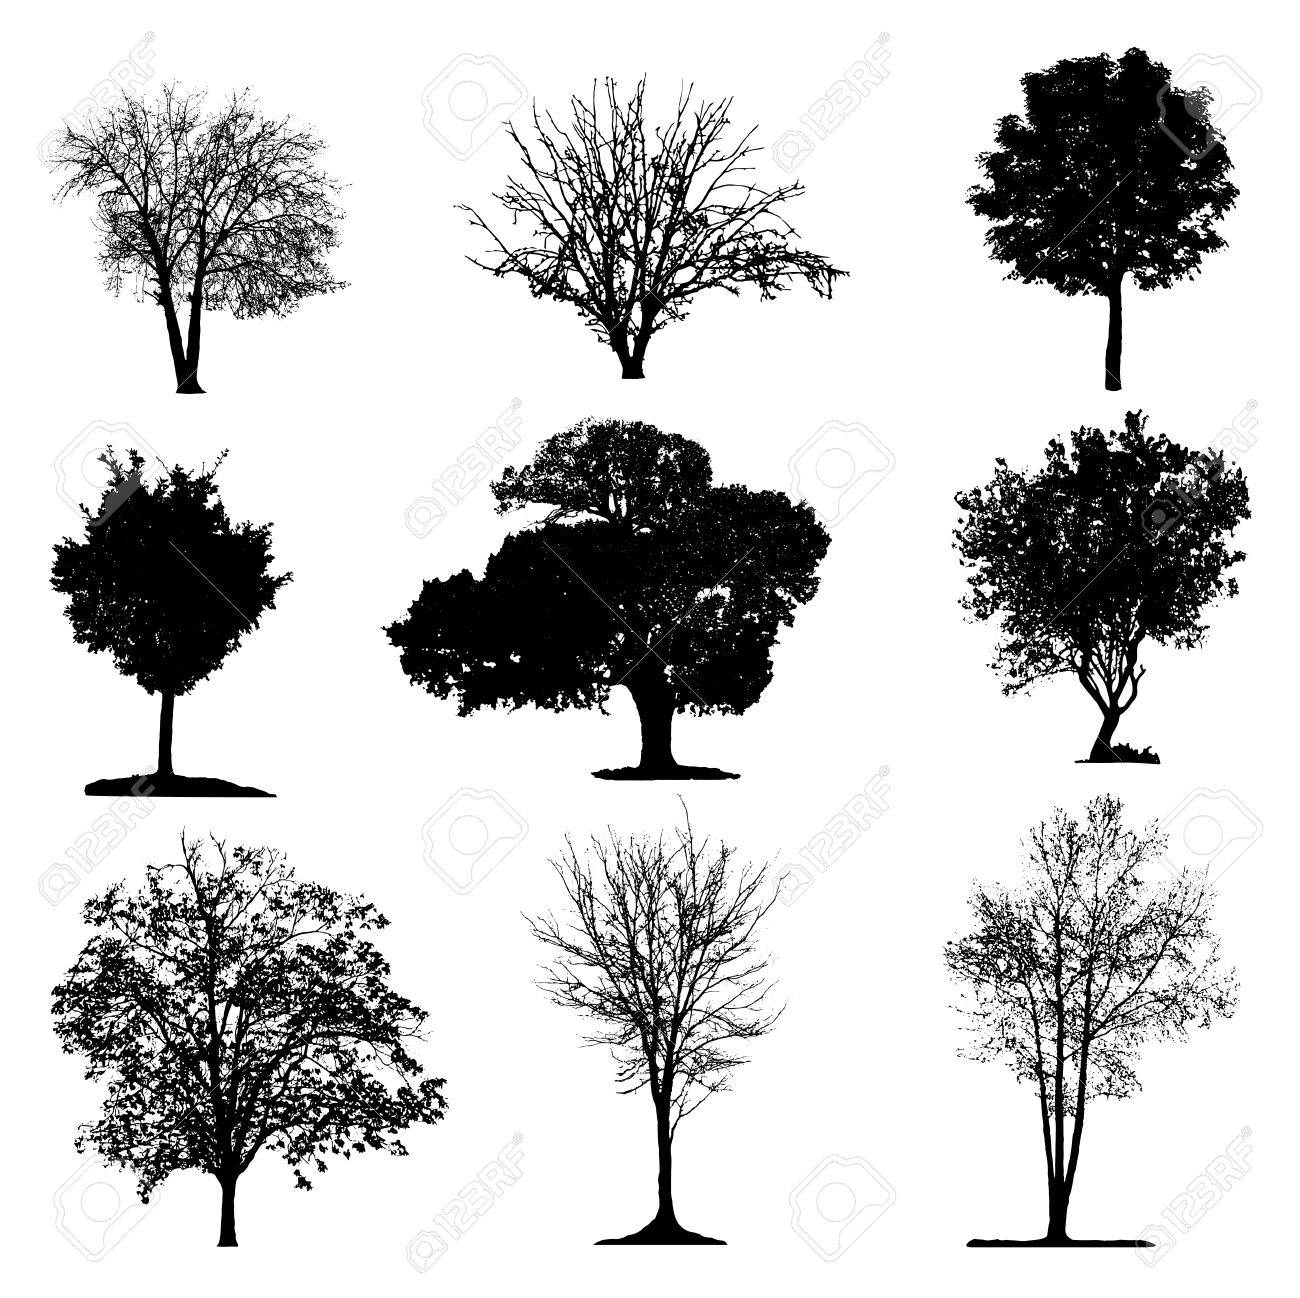 Trees silhouette collection - 53221587